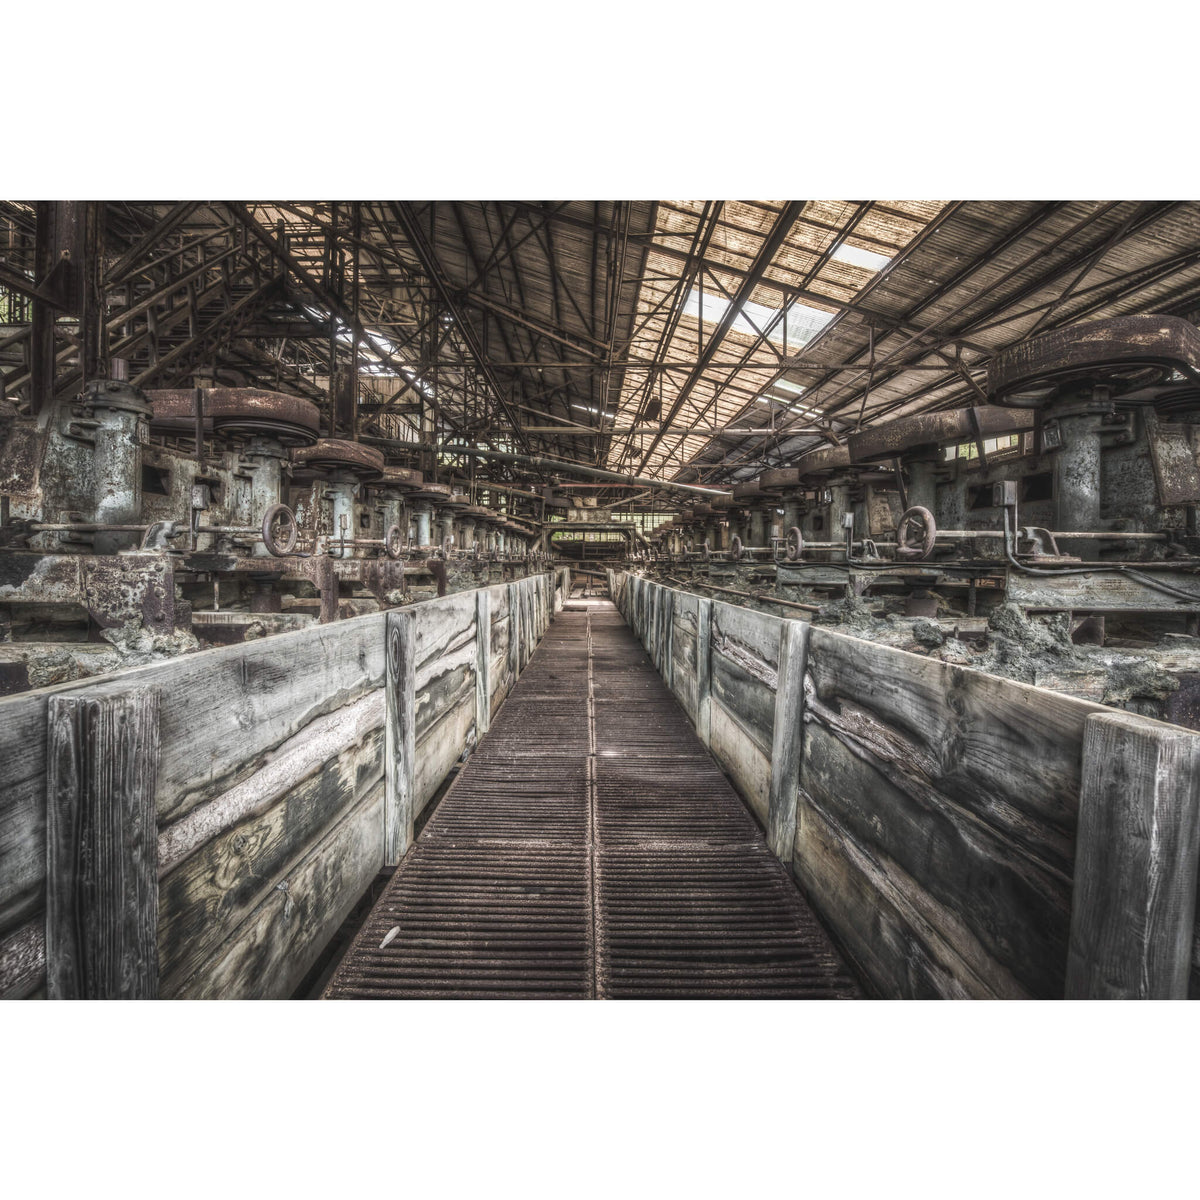 Froth Flotation Cells | Ashio Copper Mine Fine Art Print - Lost Collective Shop